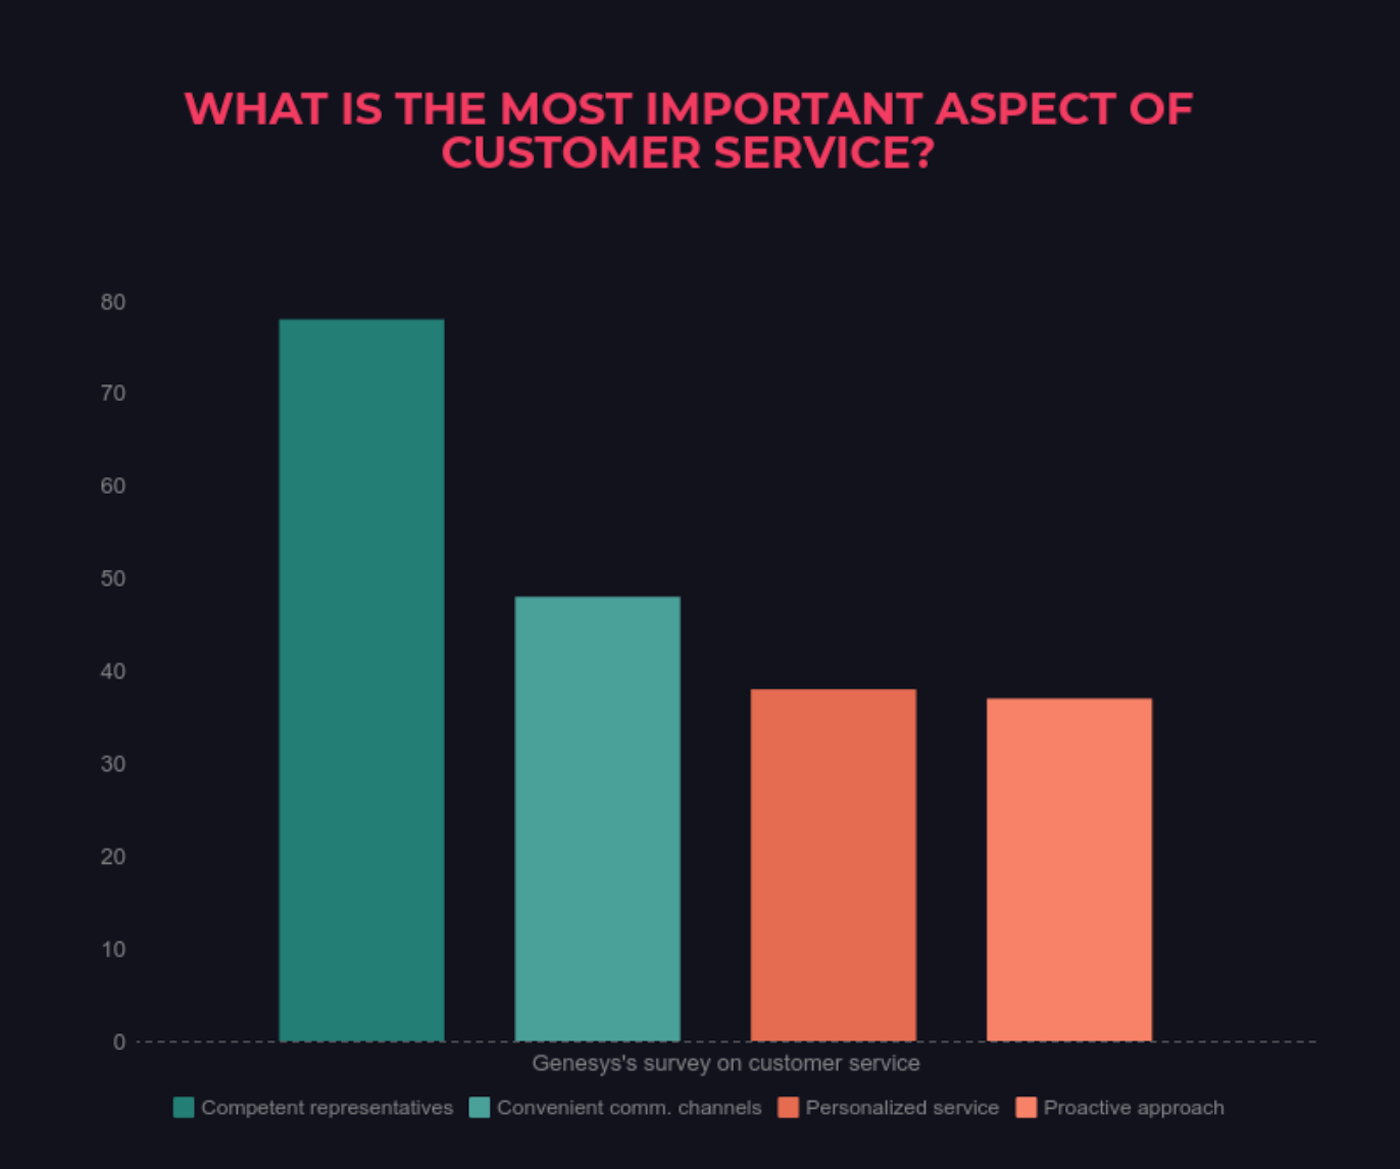 genesys survey on customer service bars